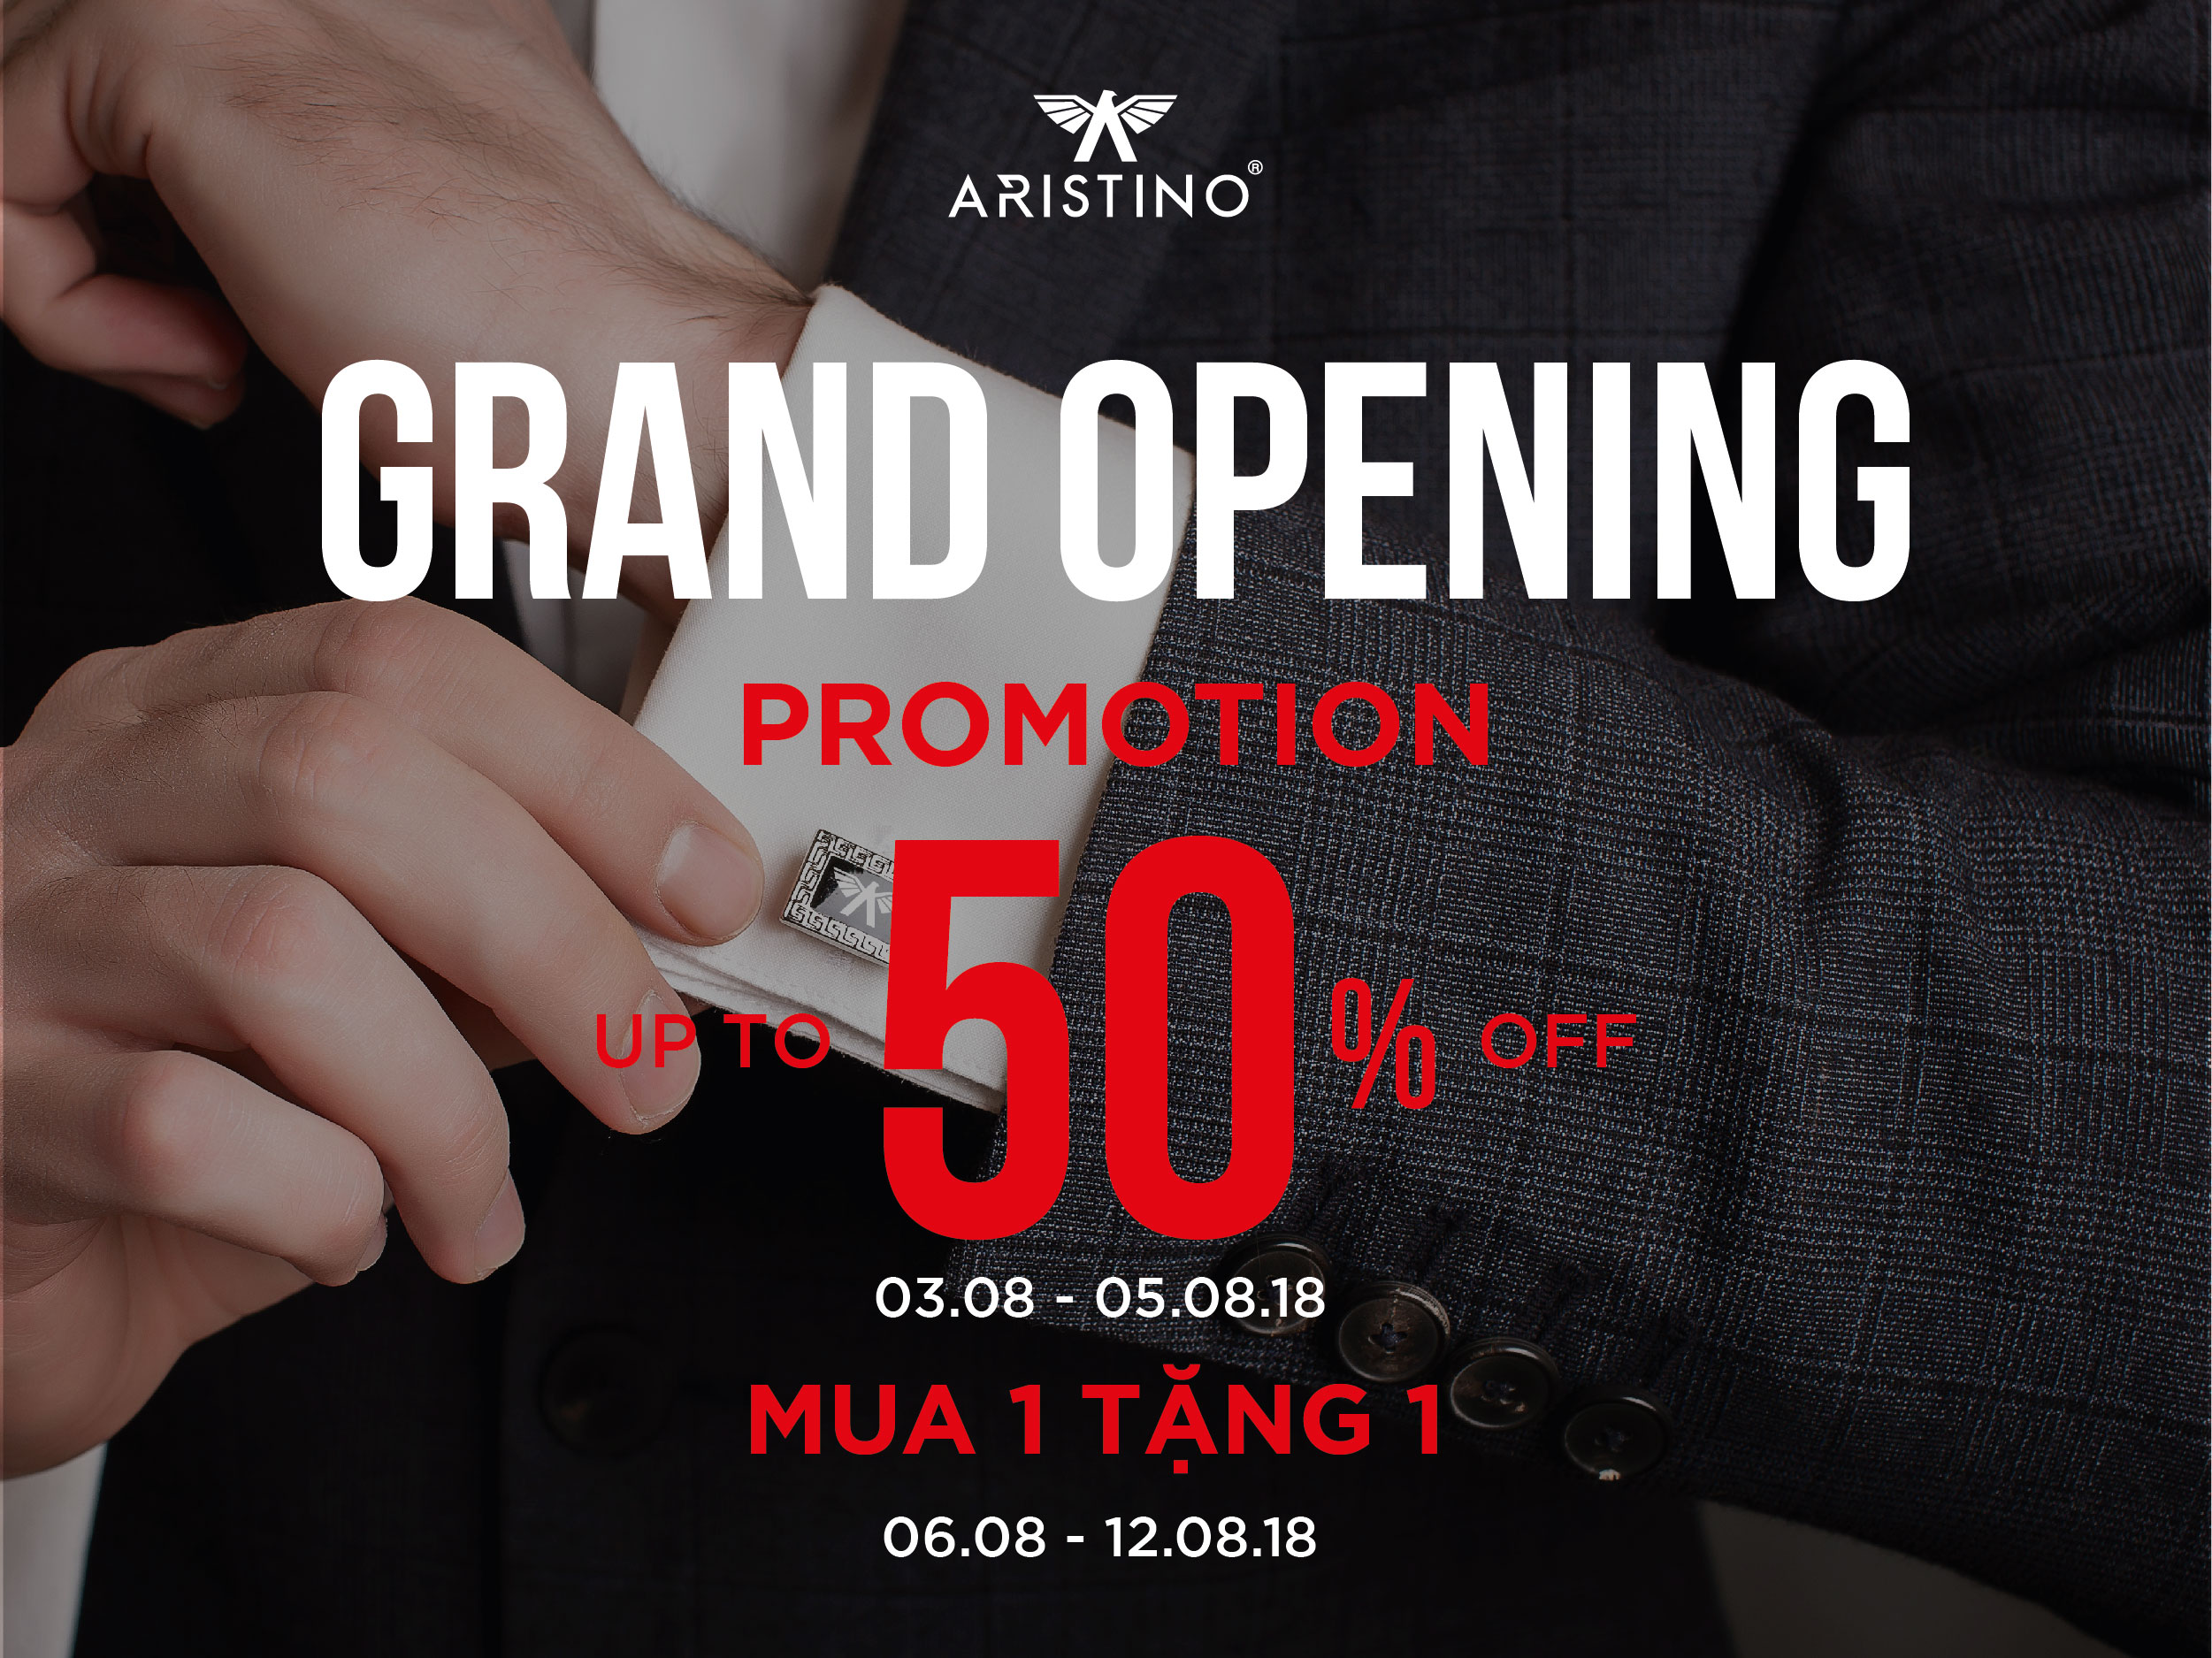 [GRAND OPENING] – ARISTINO OFFICIALLY ARRIVES DANANG